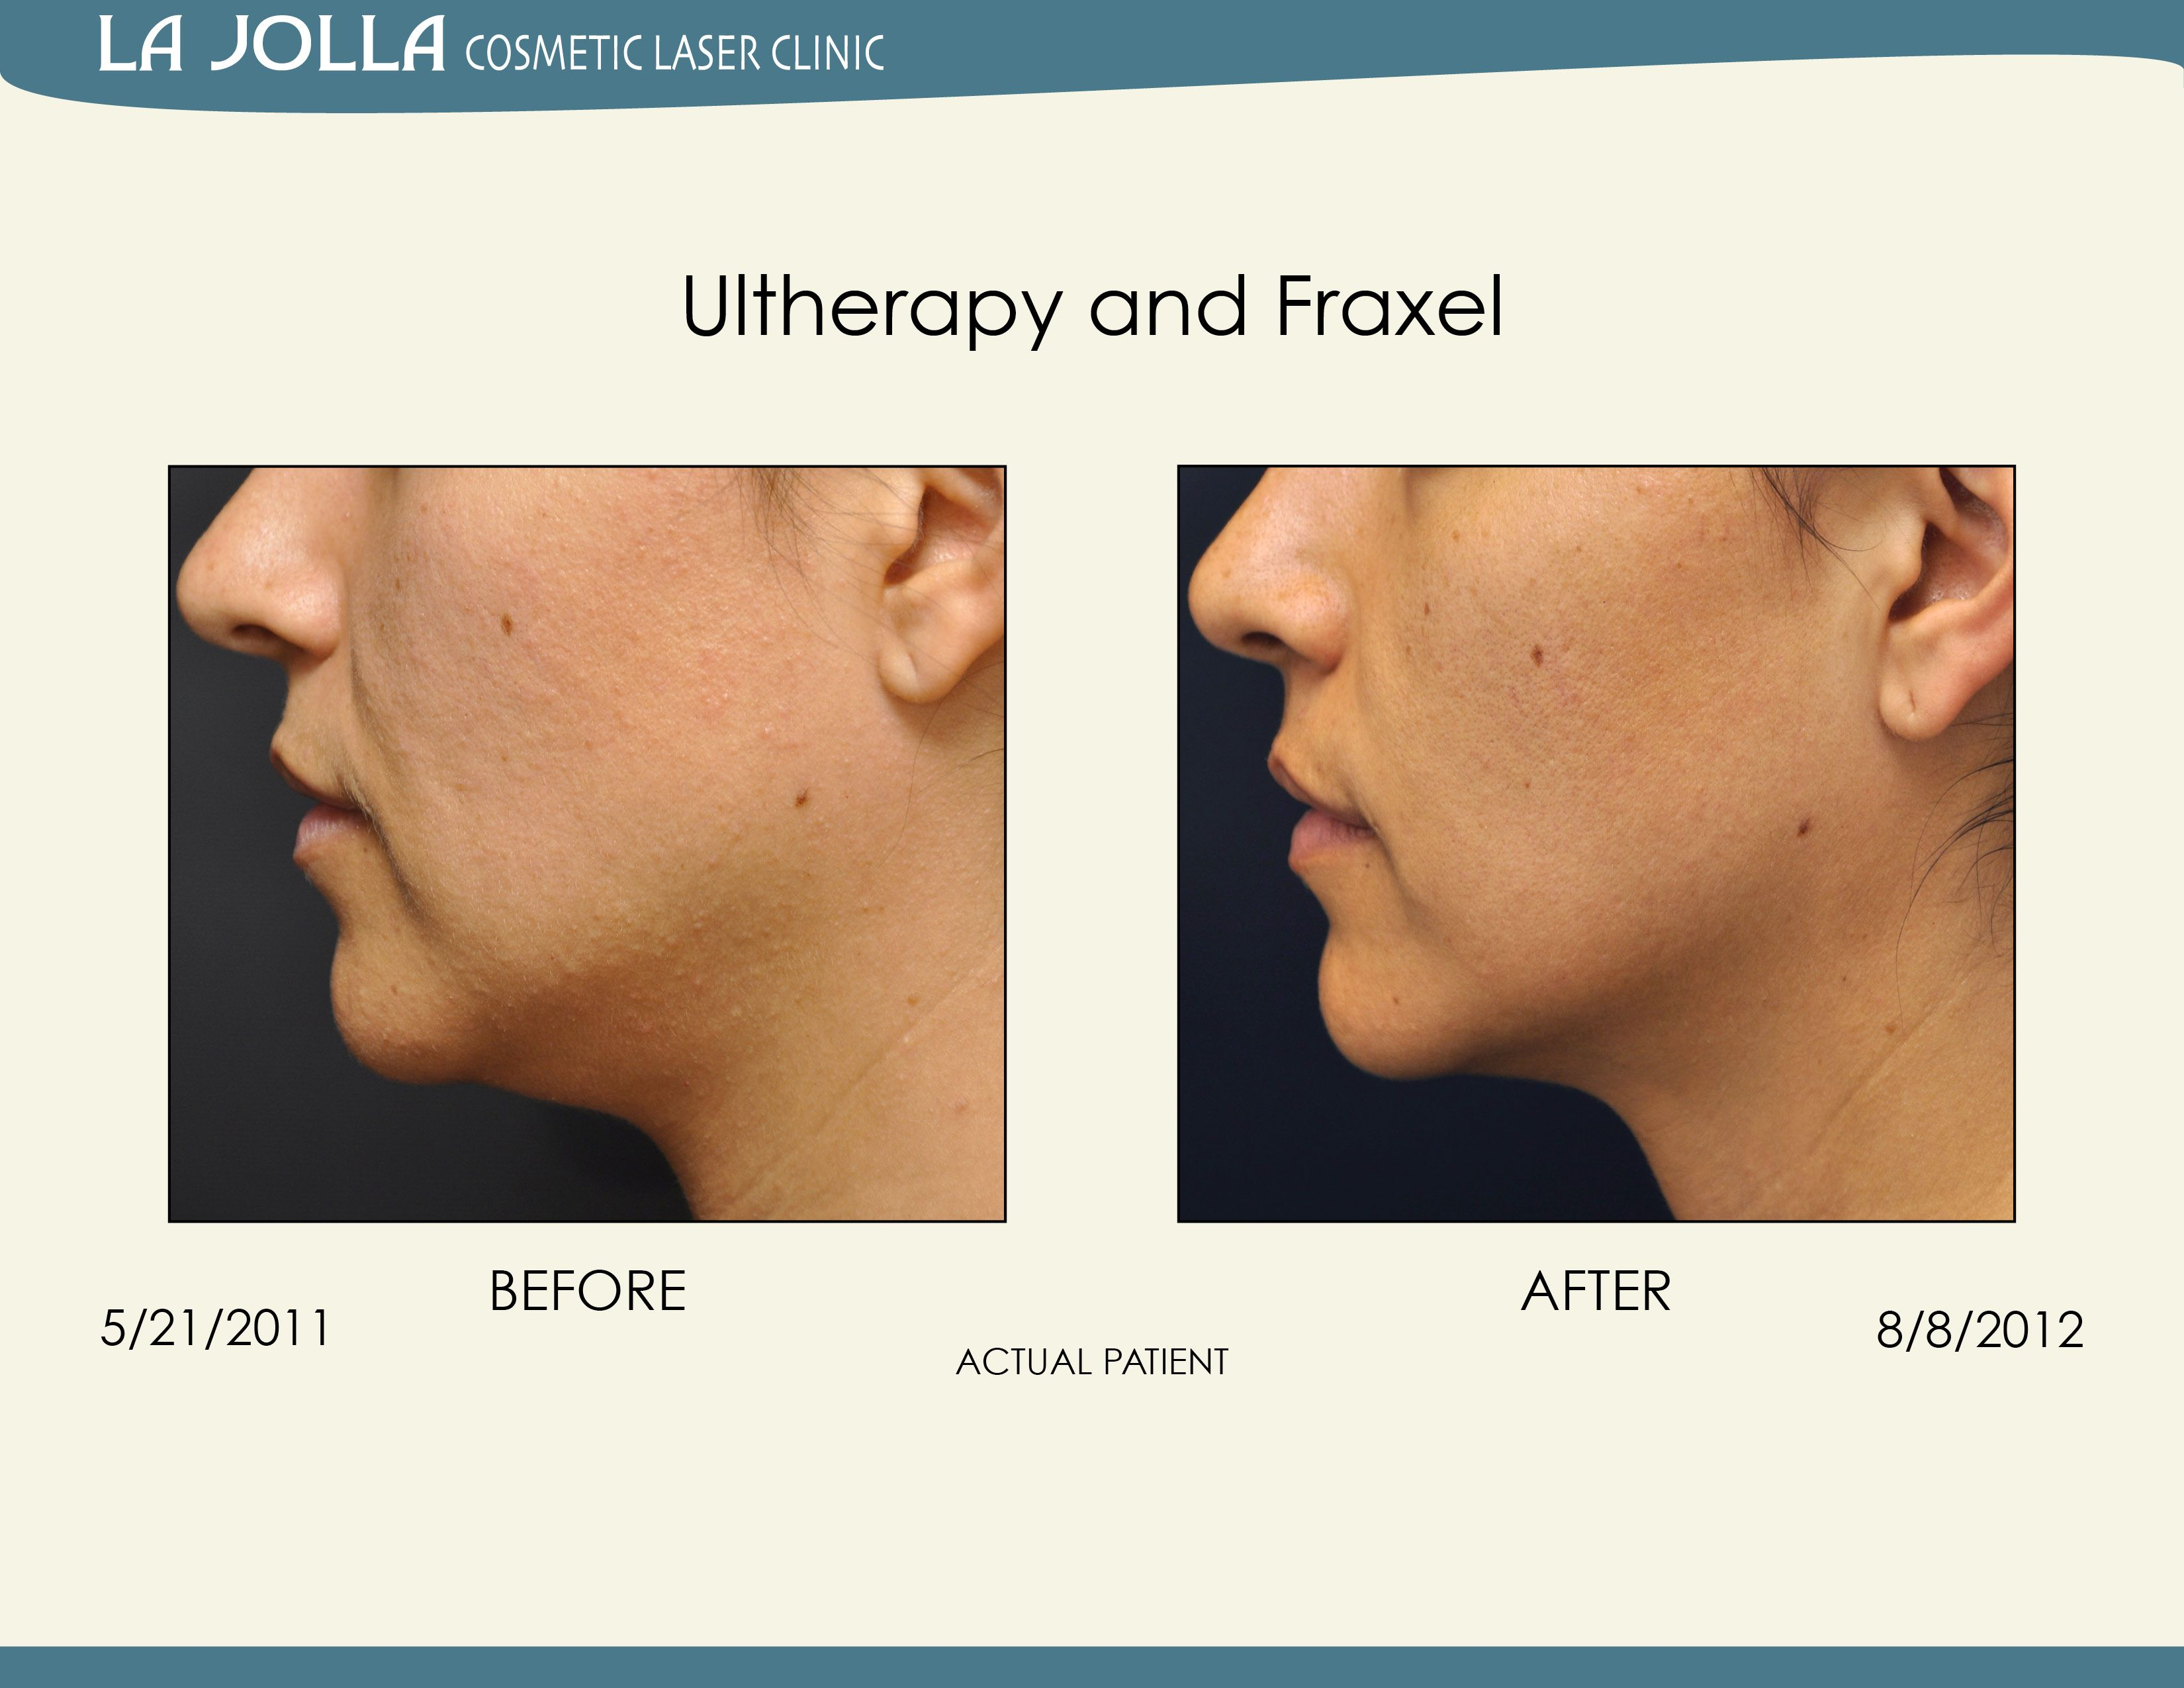 Patient treated with Ultherapy and Fraxel at La Jolla